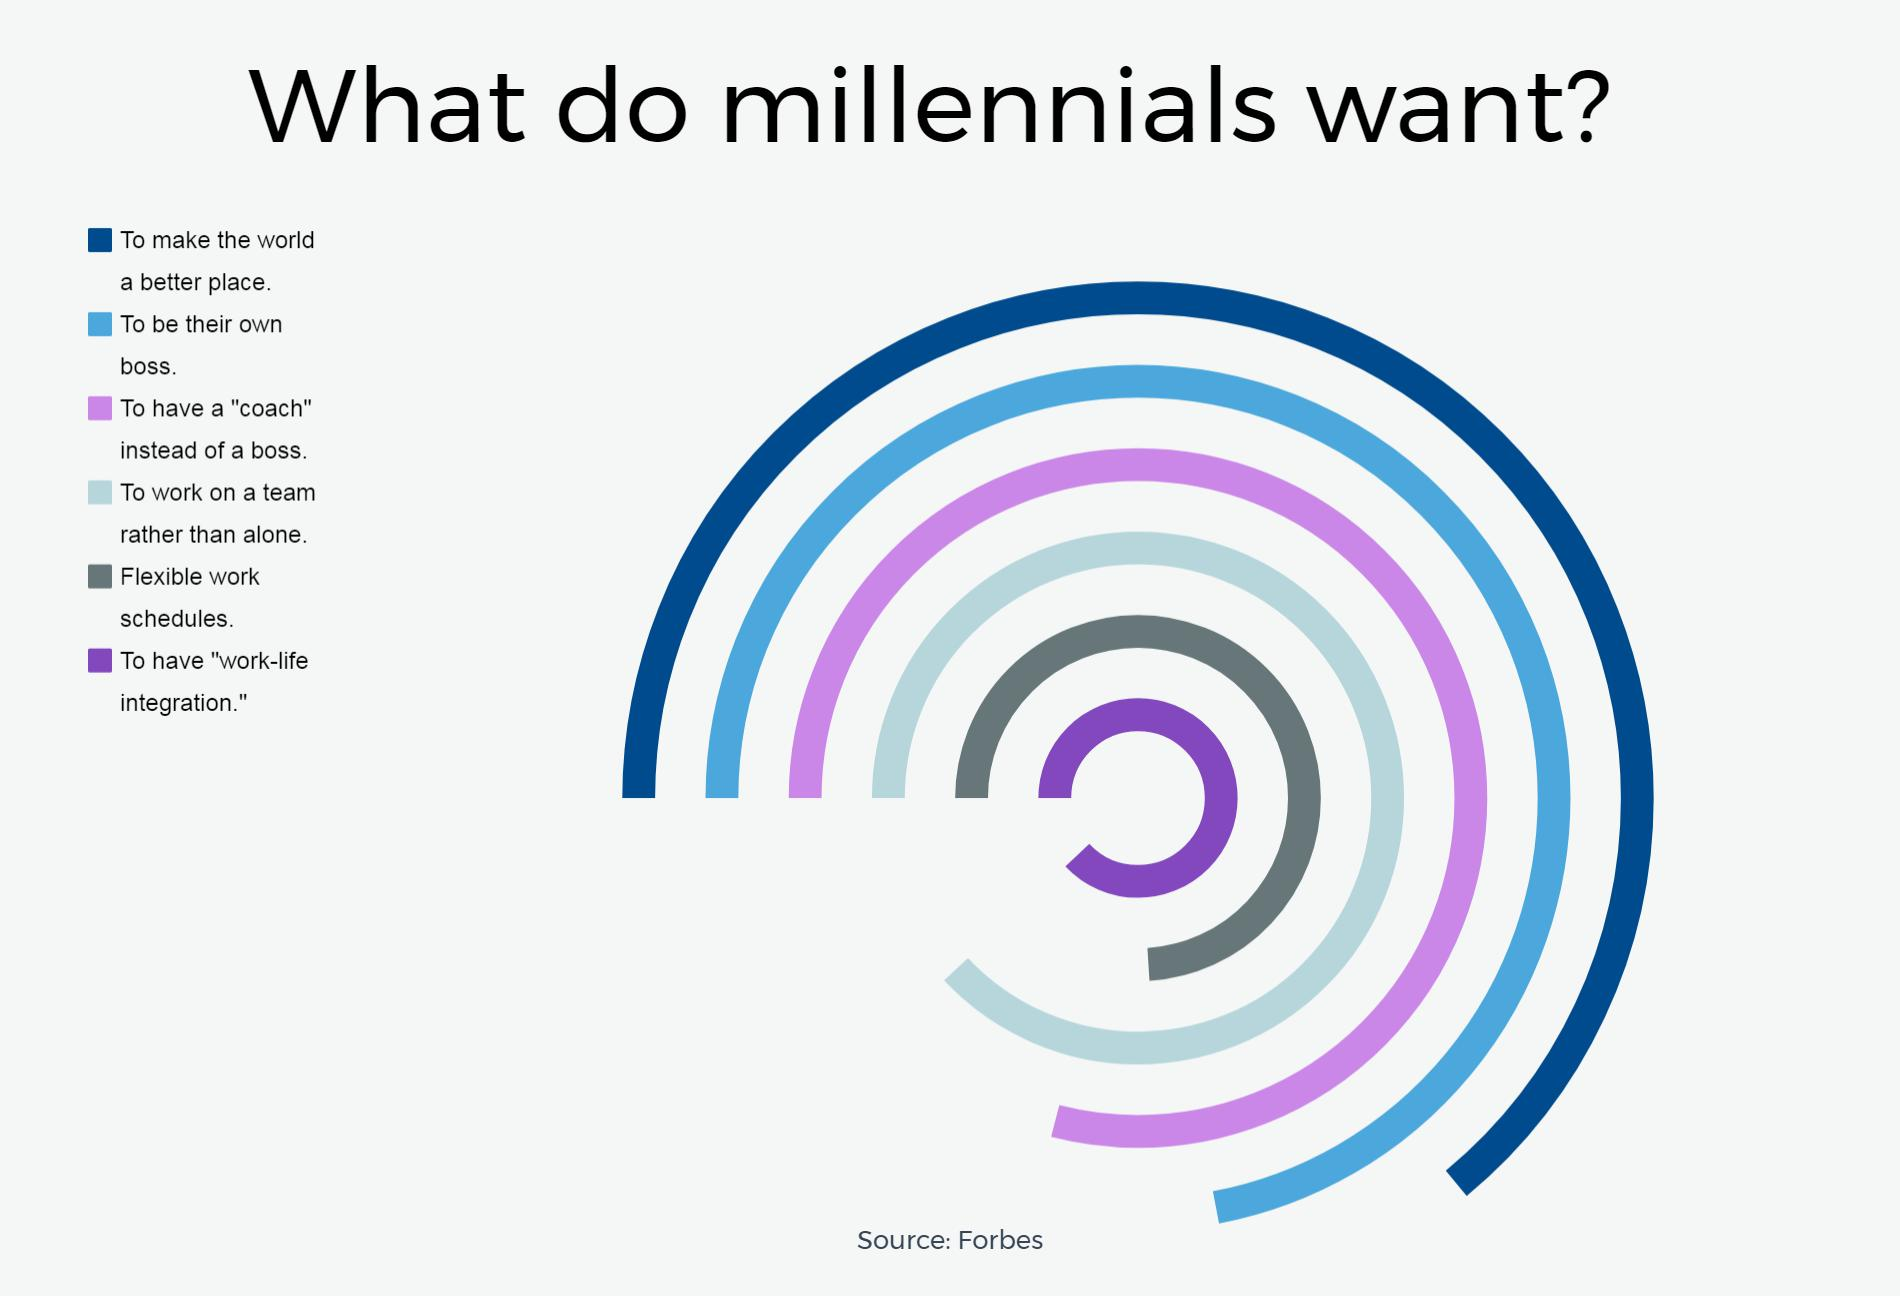 This is what millennials want in the workplace